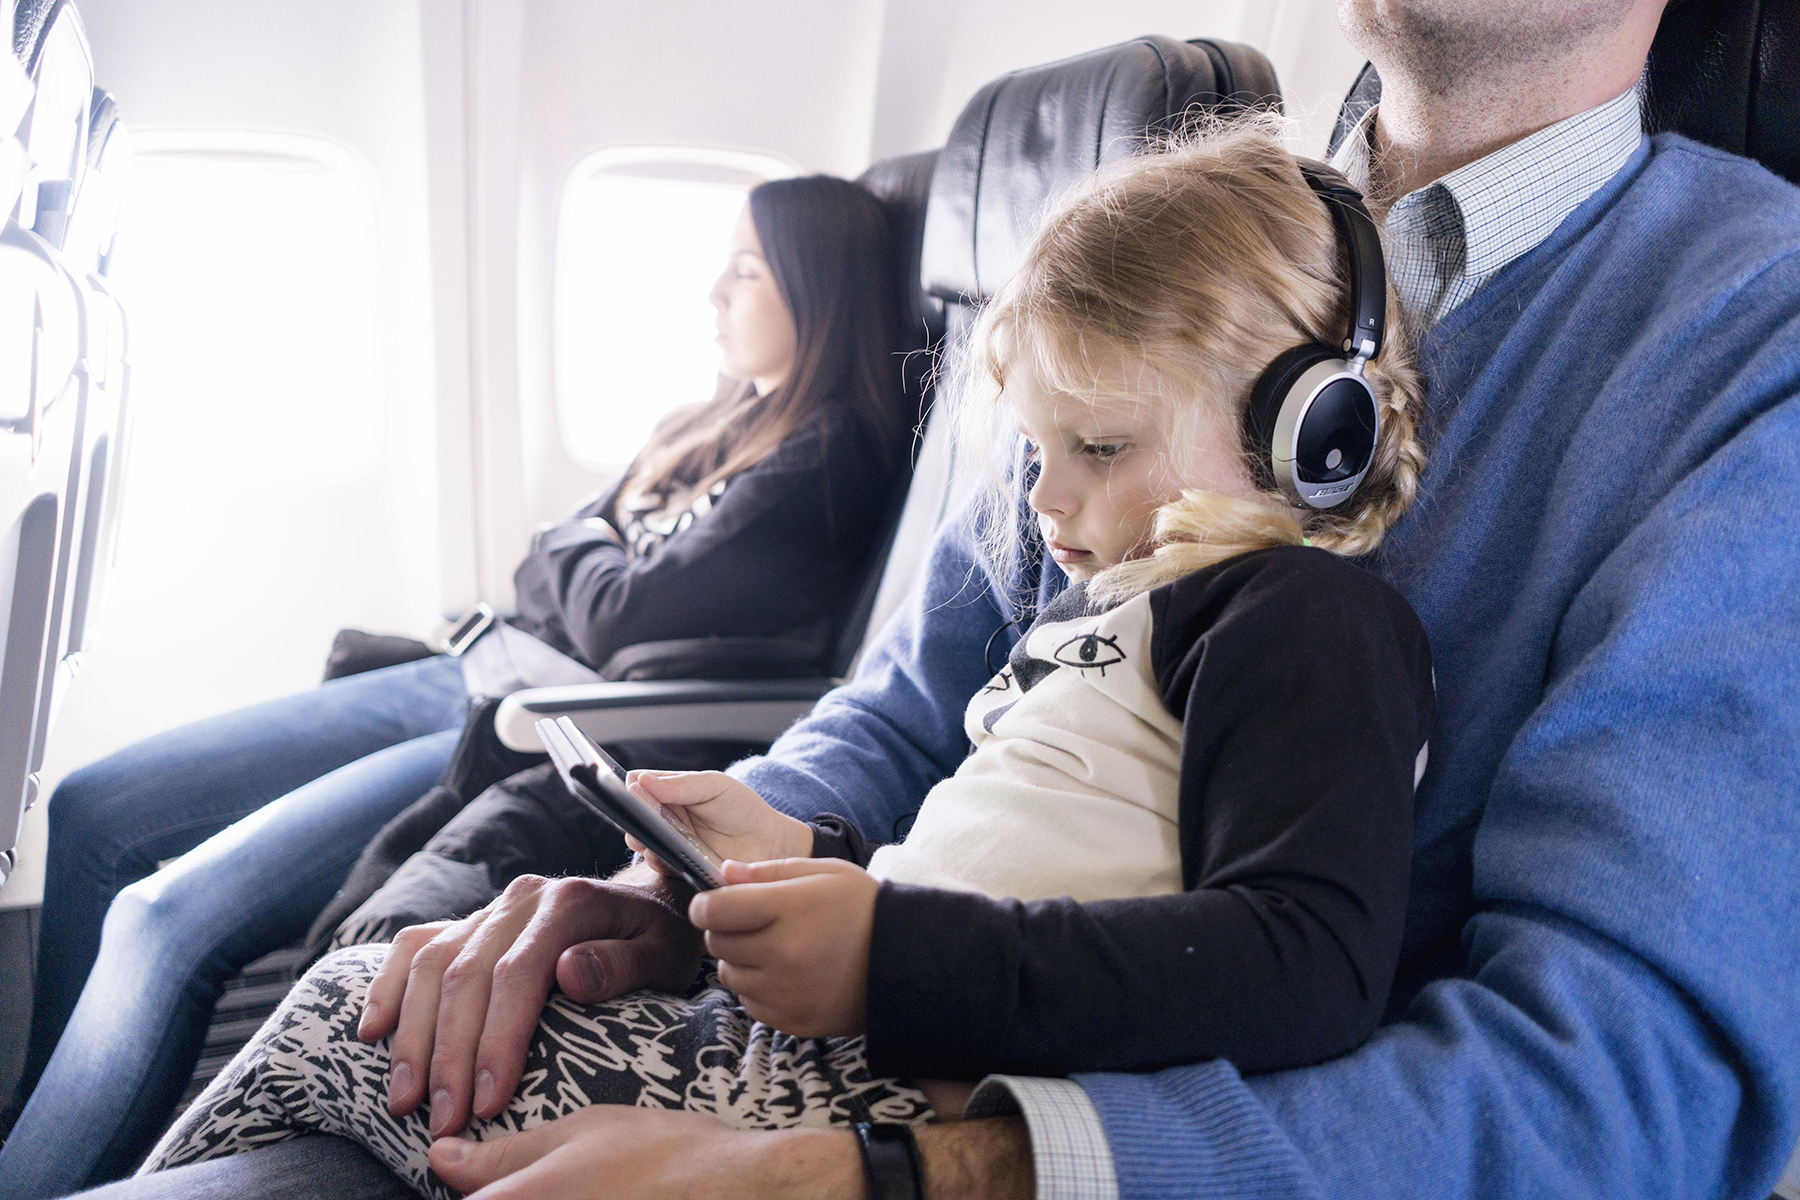 iPad for in-flight entertainment | Best travel gear for babies and toddlers